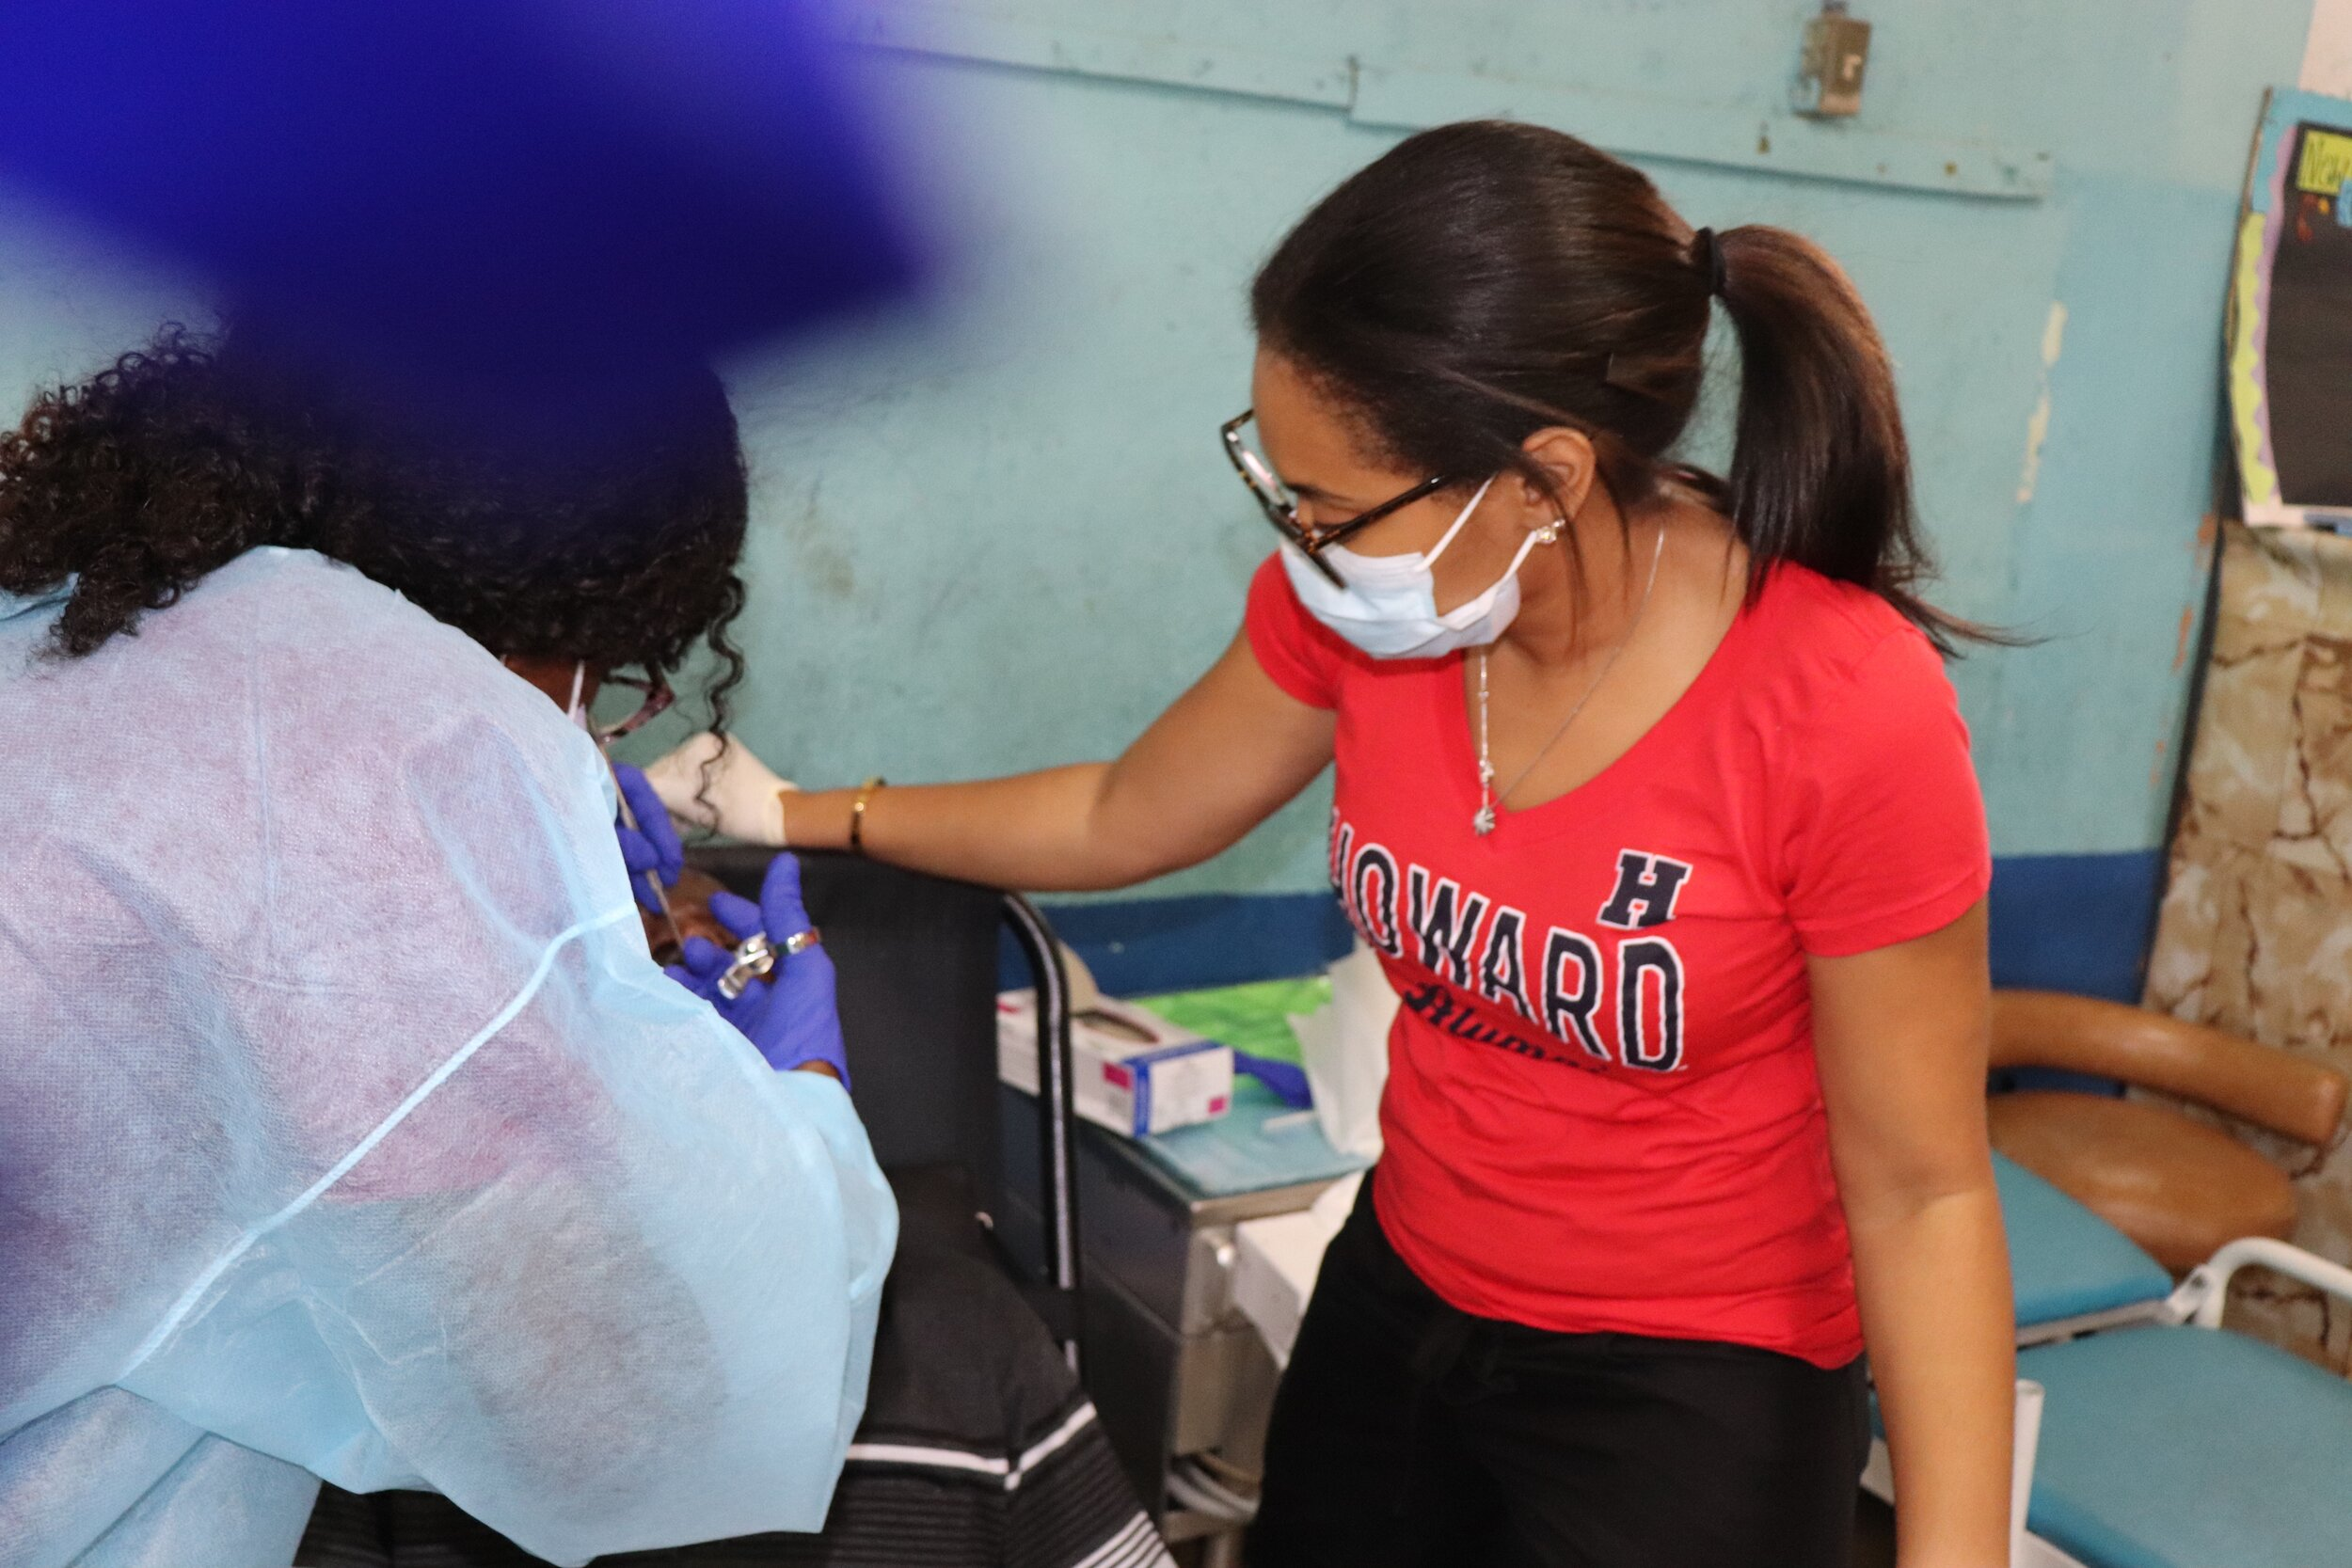 Dr. Smith with UTech dental student as anesthesia is being administered